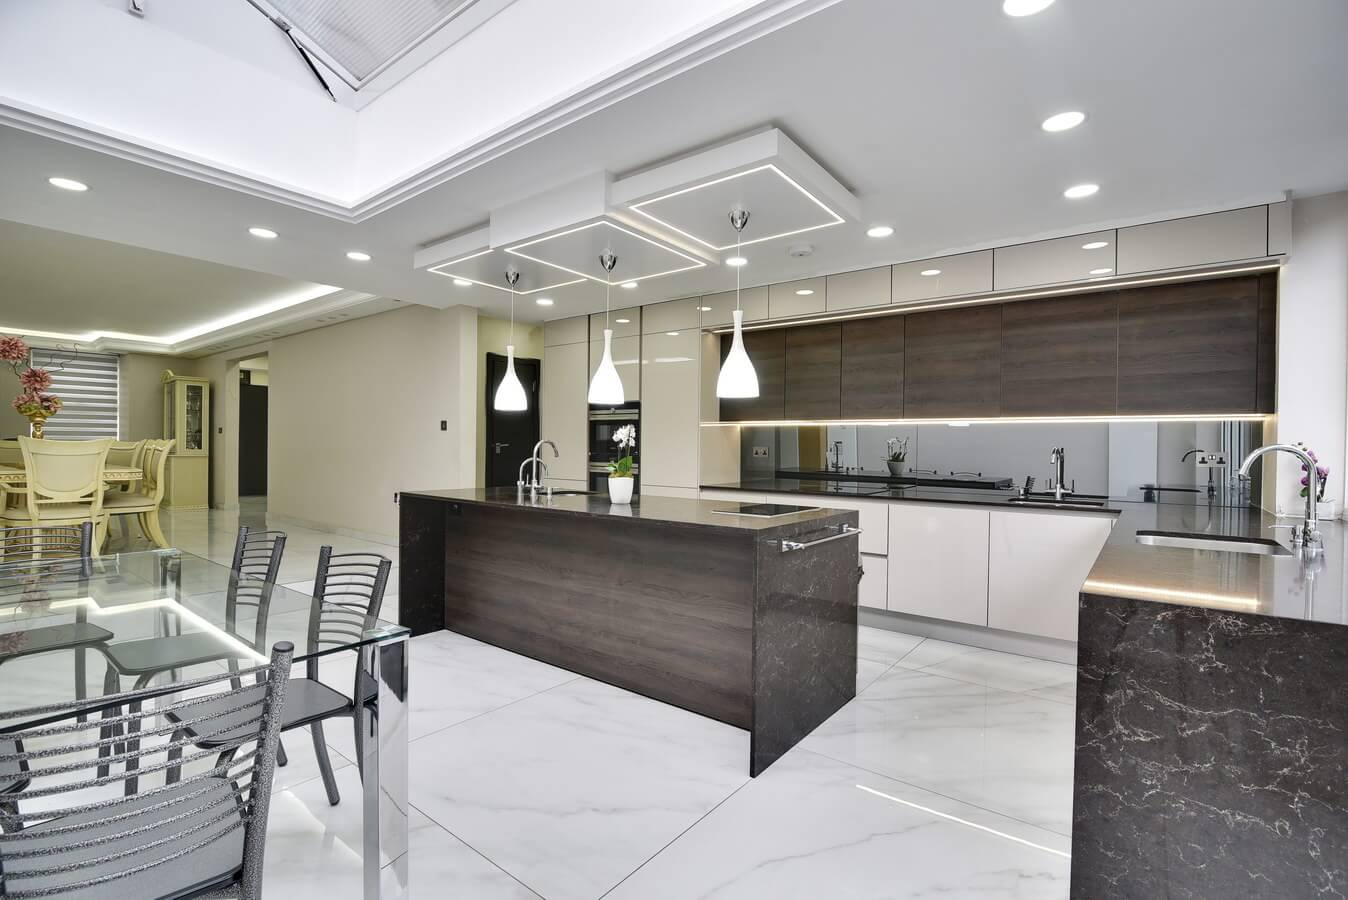 Sand-High-Gloss-Kosher-Kitchen-North-London.jpg